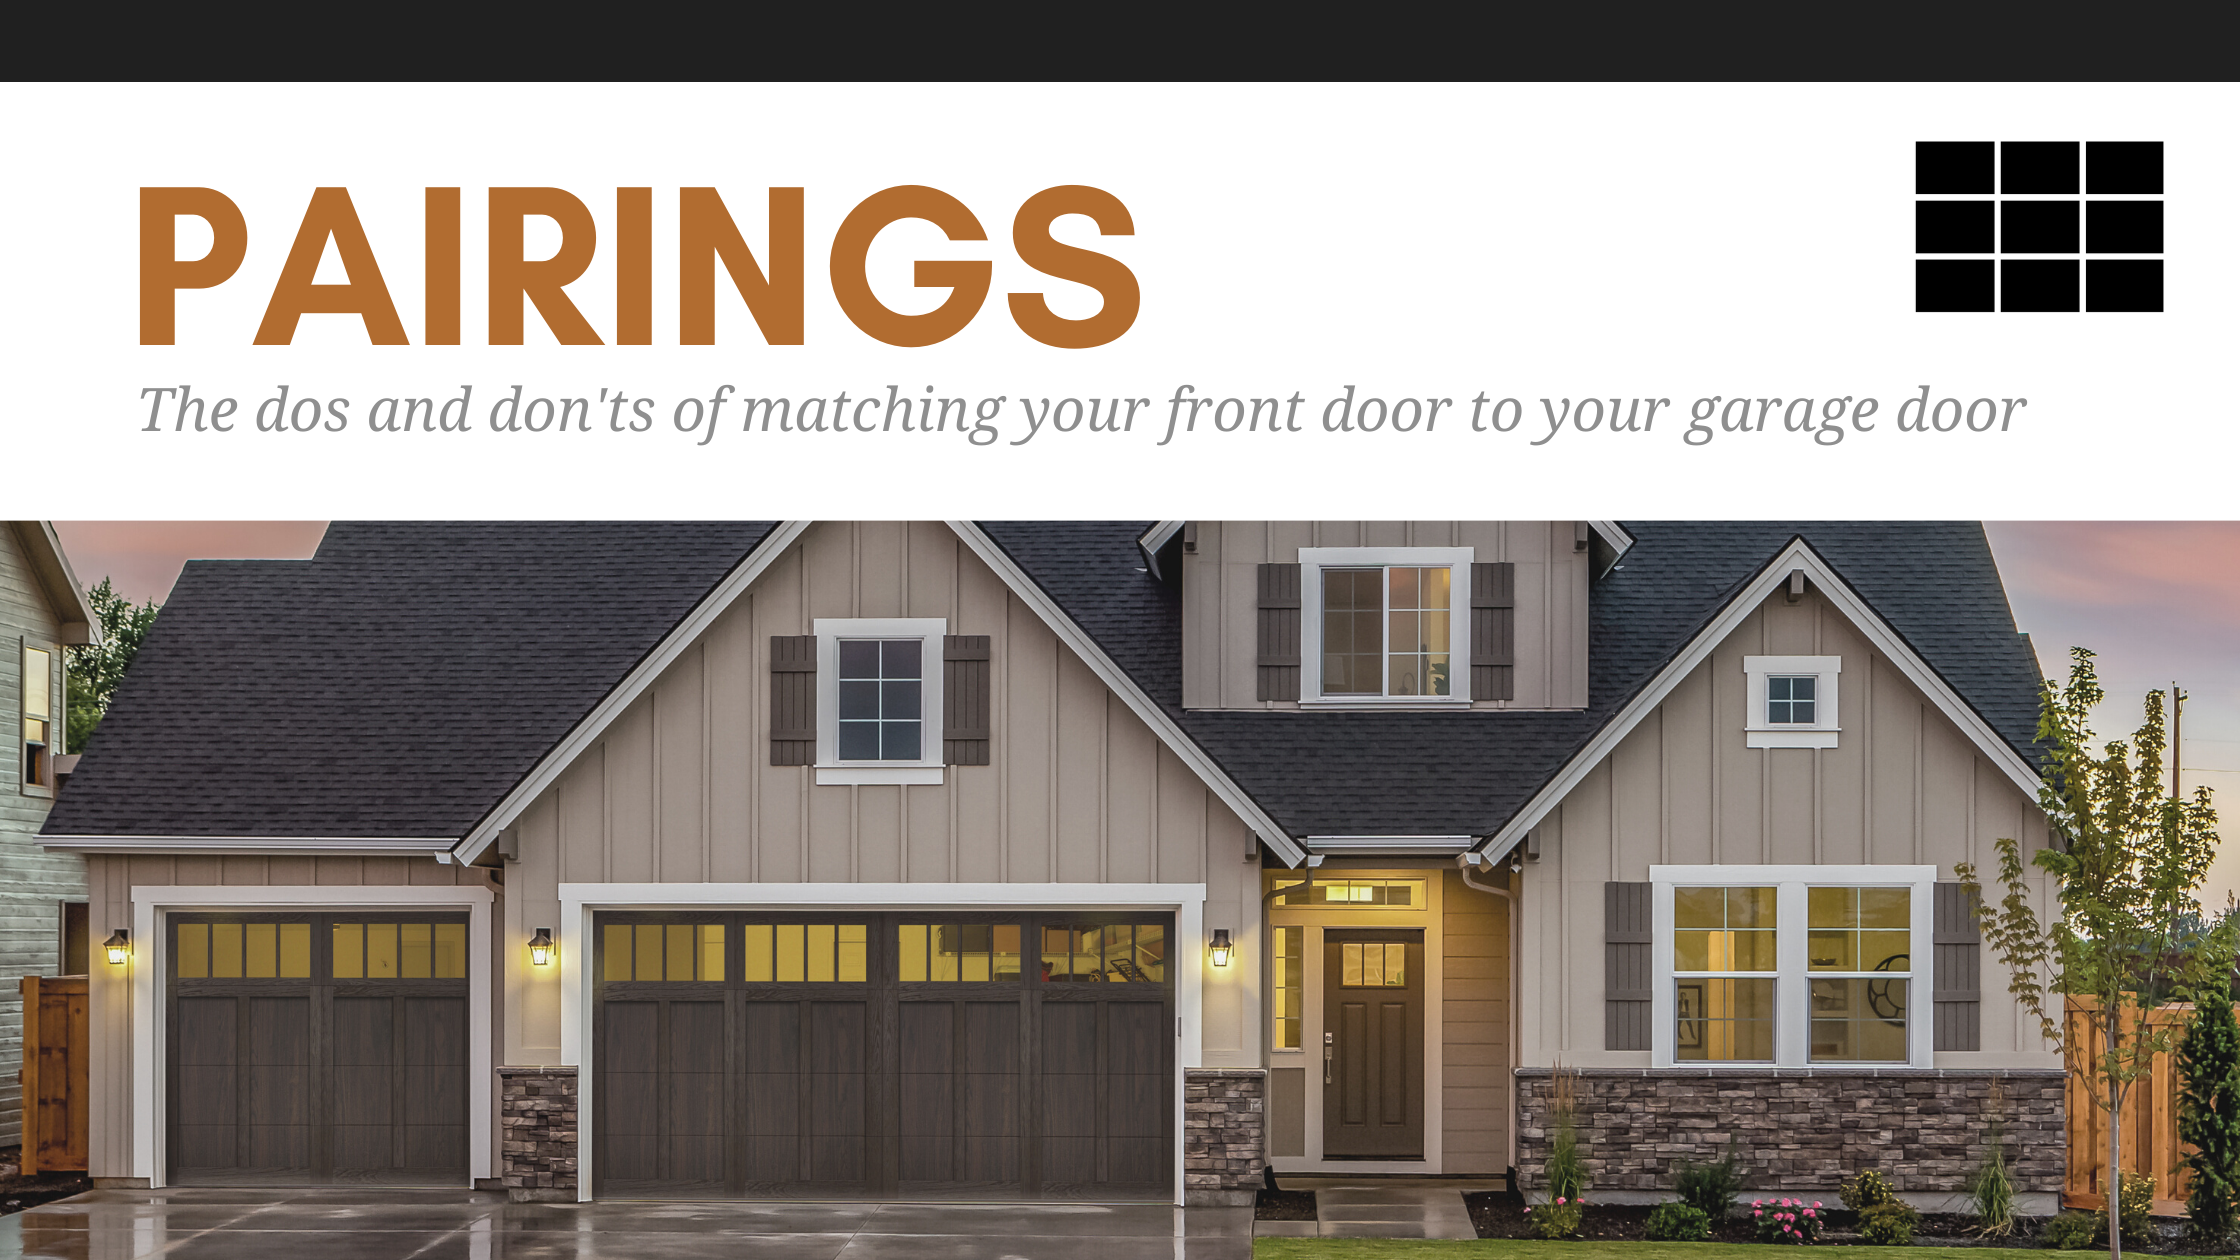 The Dos and Don'ts of Matching Your Front Door to Your Garage Door